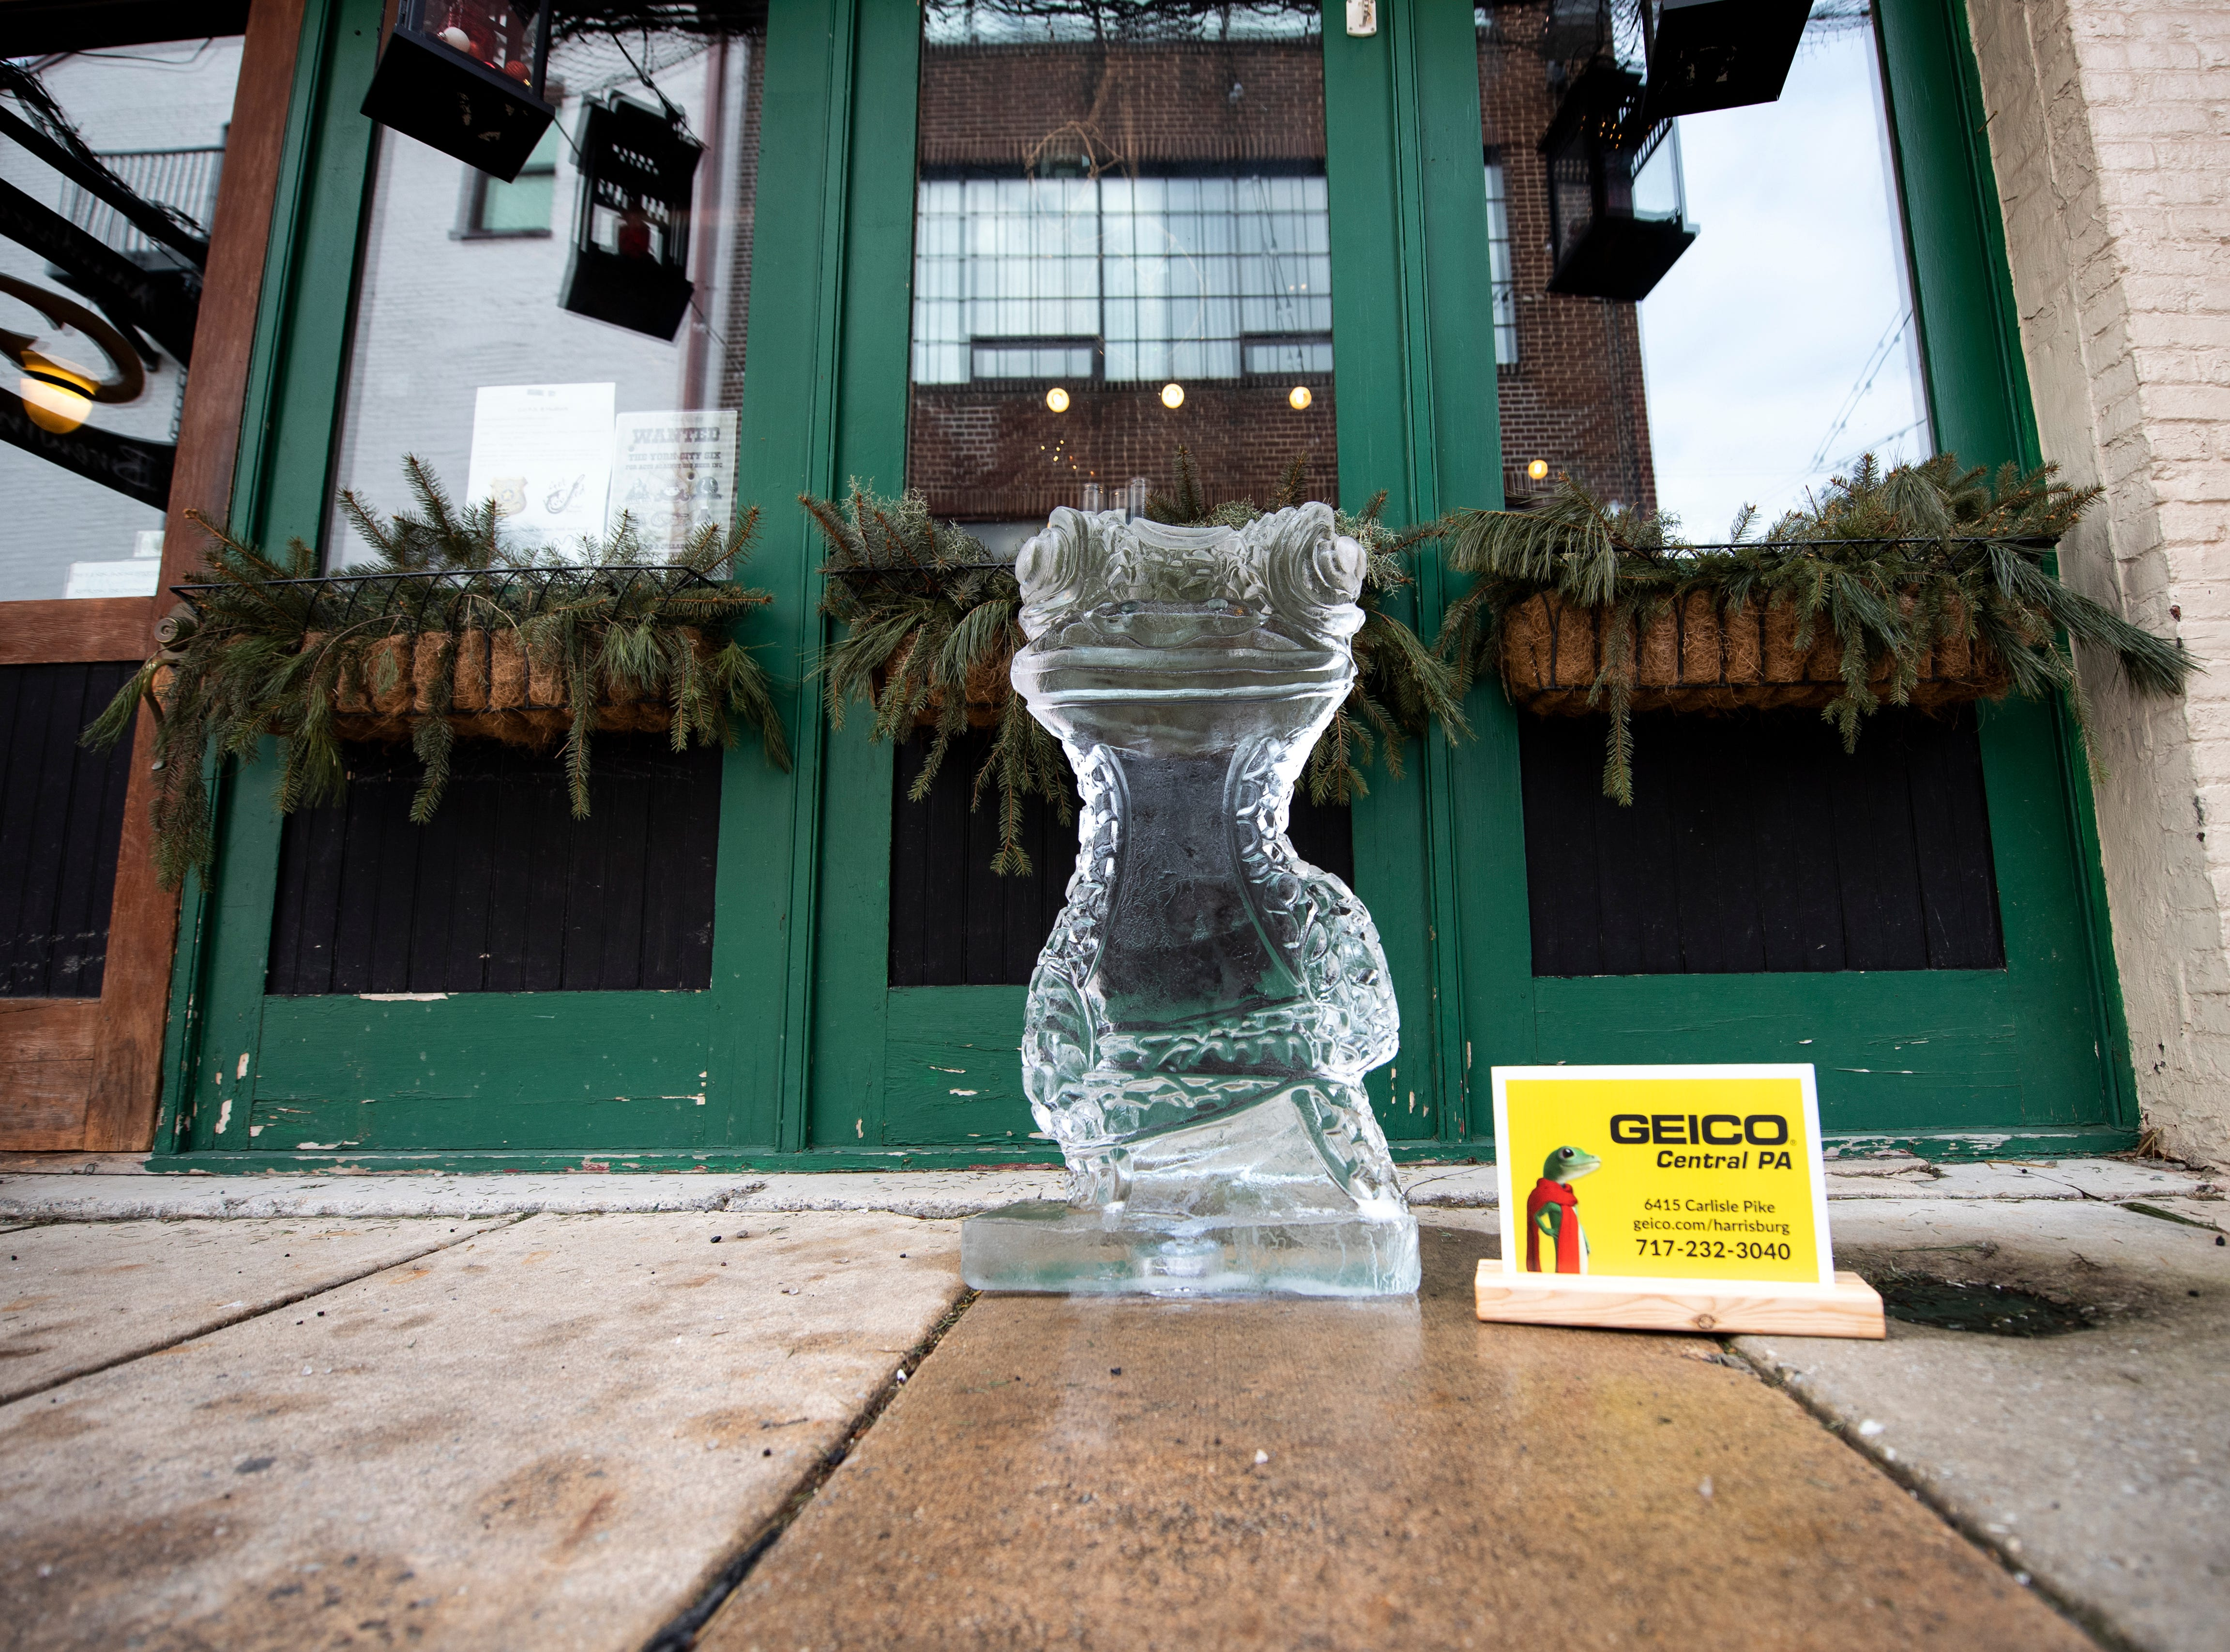 On the streets surrounding Cherry Lane, you'll find many smaller ice sculptures, like this Geico gecko, Friday, Jan. 18, 2019. The FestivICE ice festival has interactive ice sculptures, an ice slide and more. The three-day event ends Saturday.